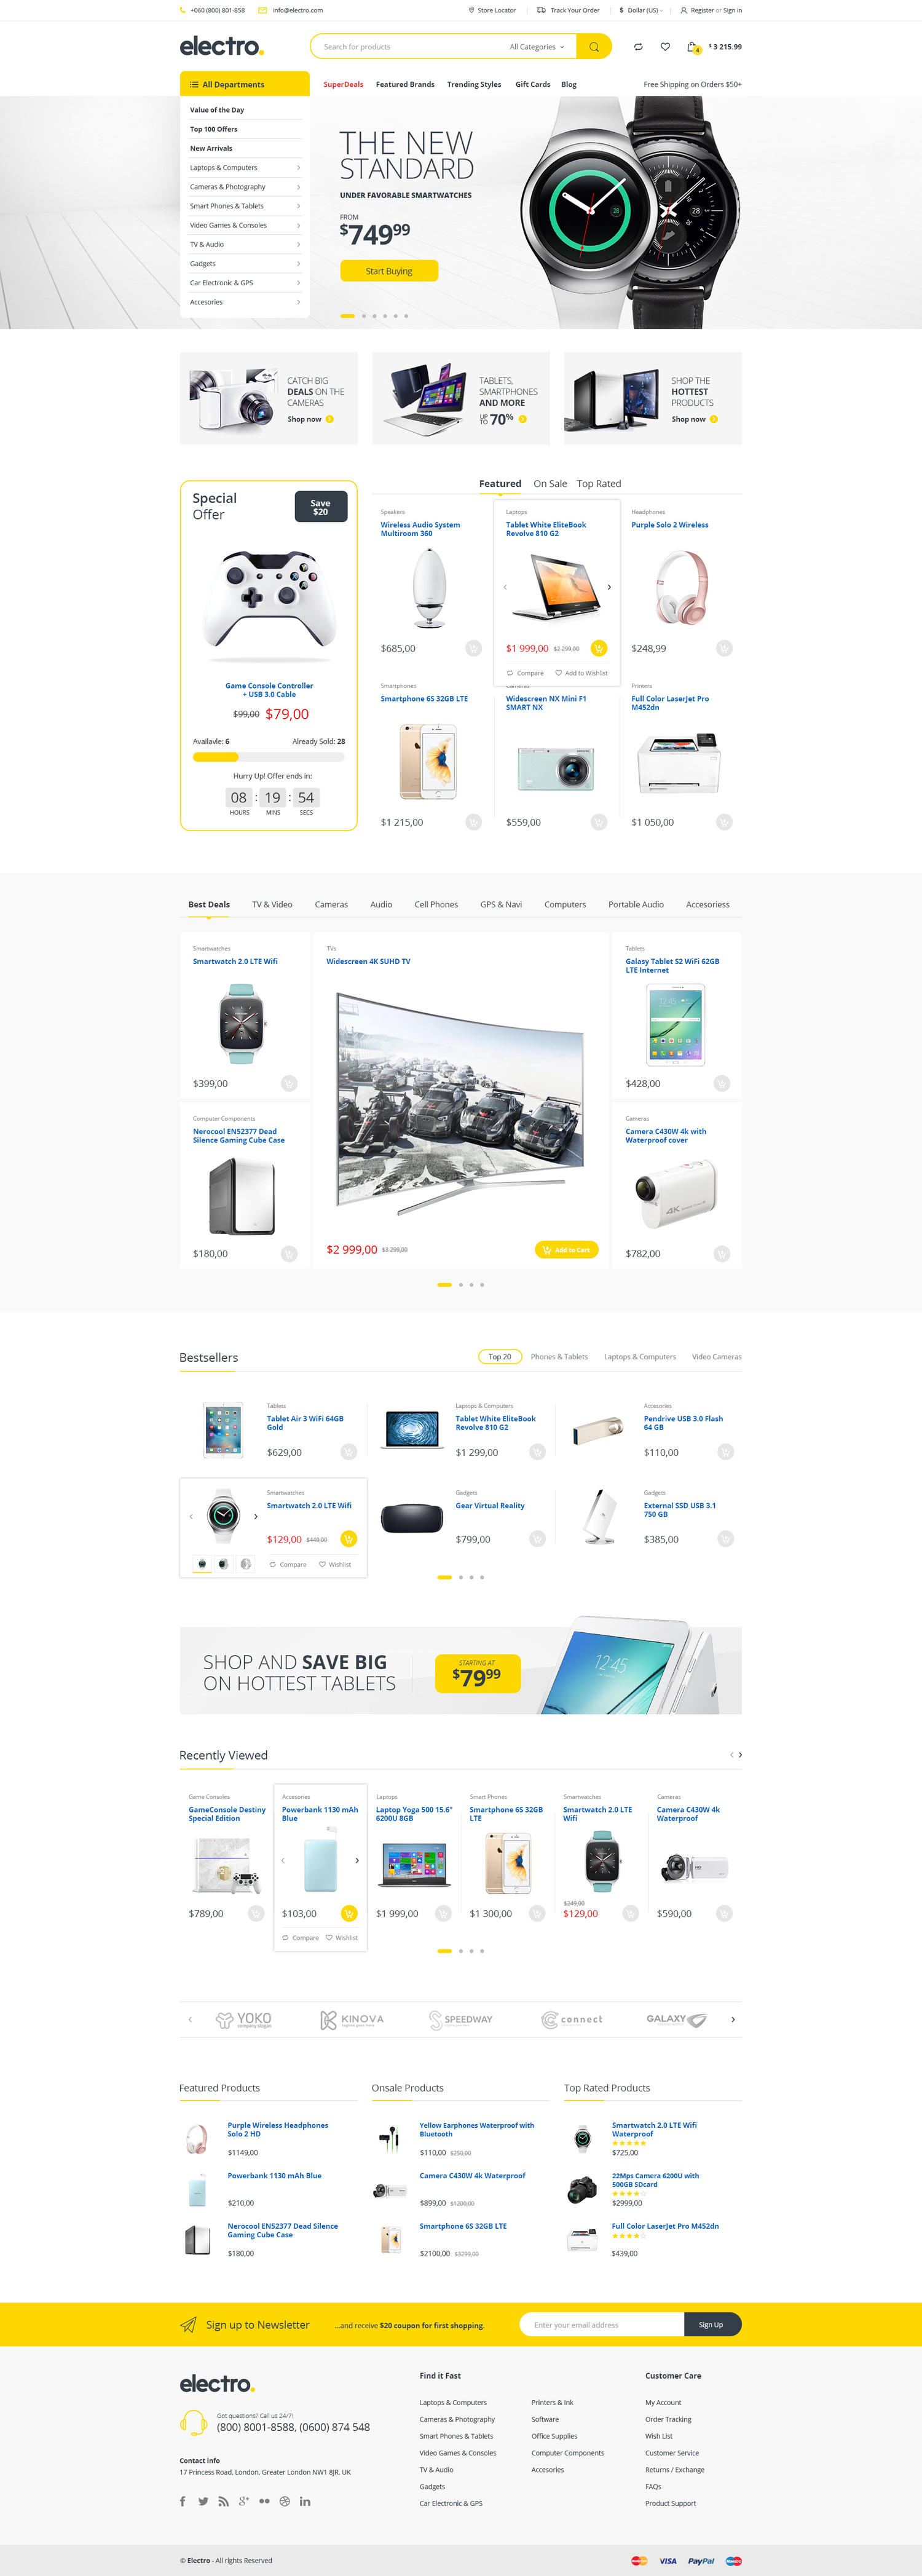 WooCommerce Customization by Greatkhanjoy - 104182